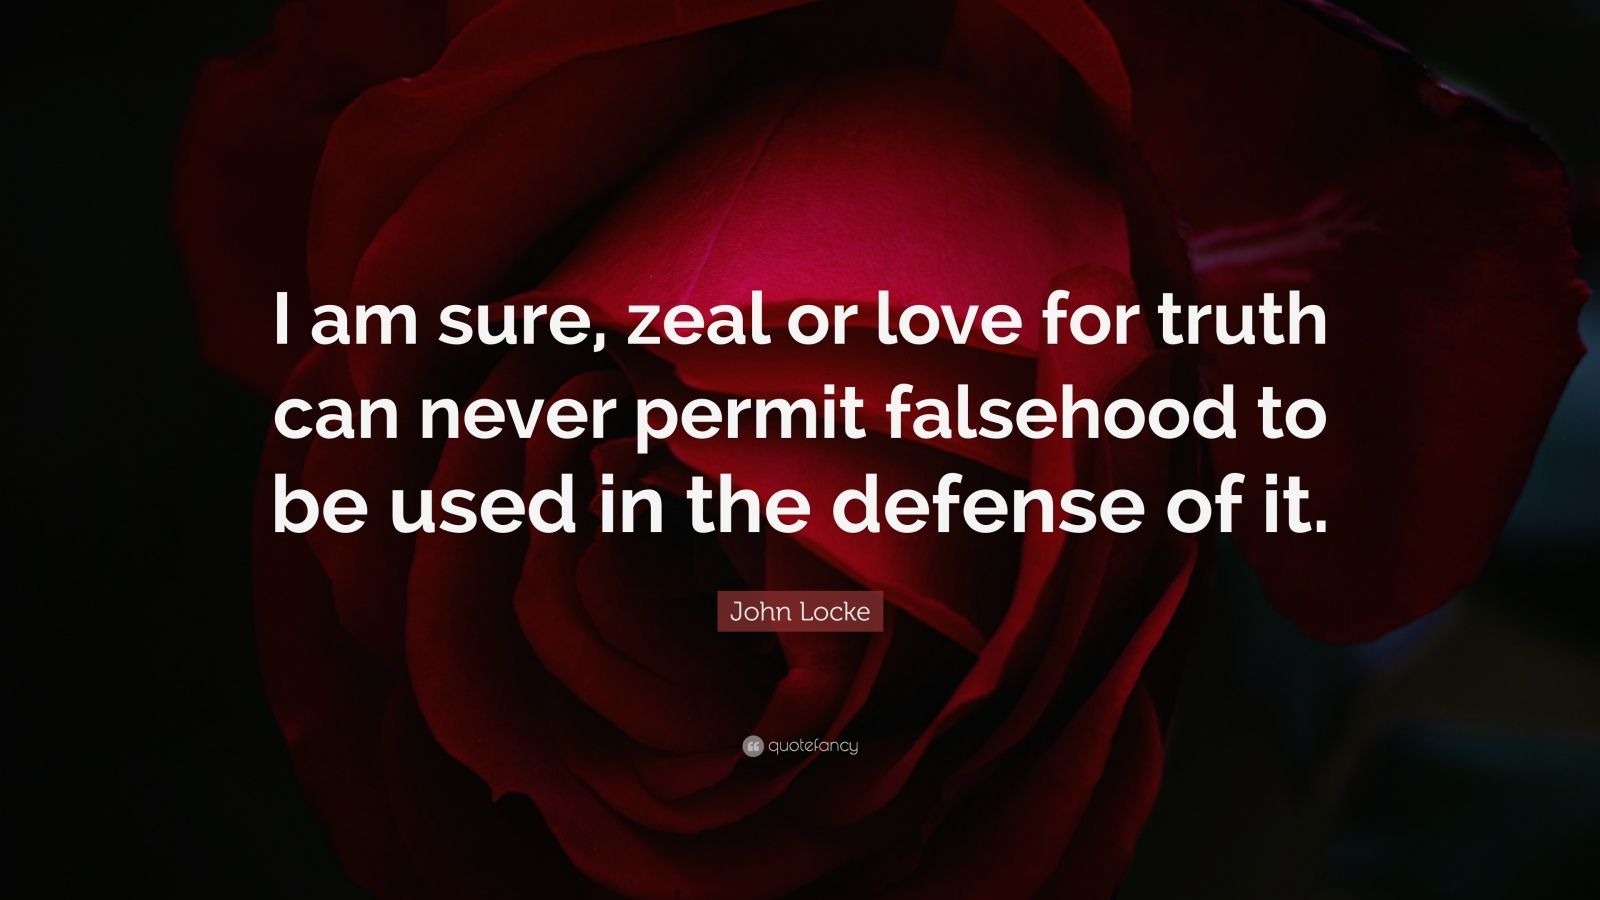 """John Locke Quote: """"I am sure, zeal or love for truth can never permit falsehood to be used in the defense of it."""""""